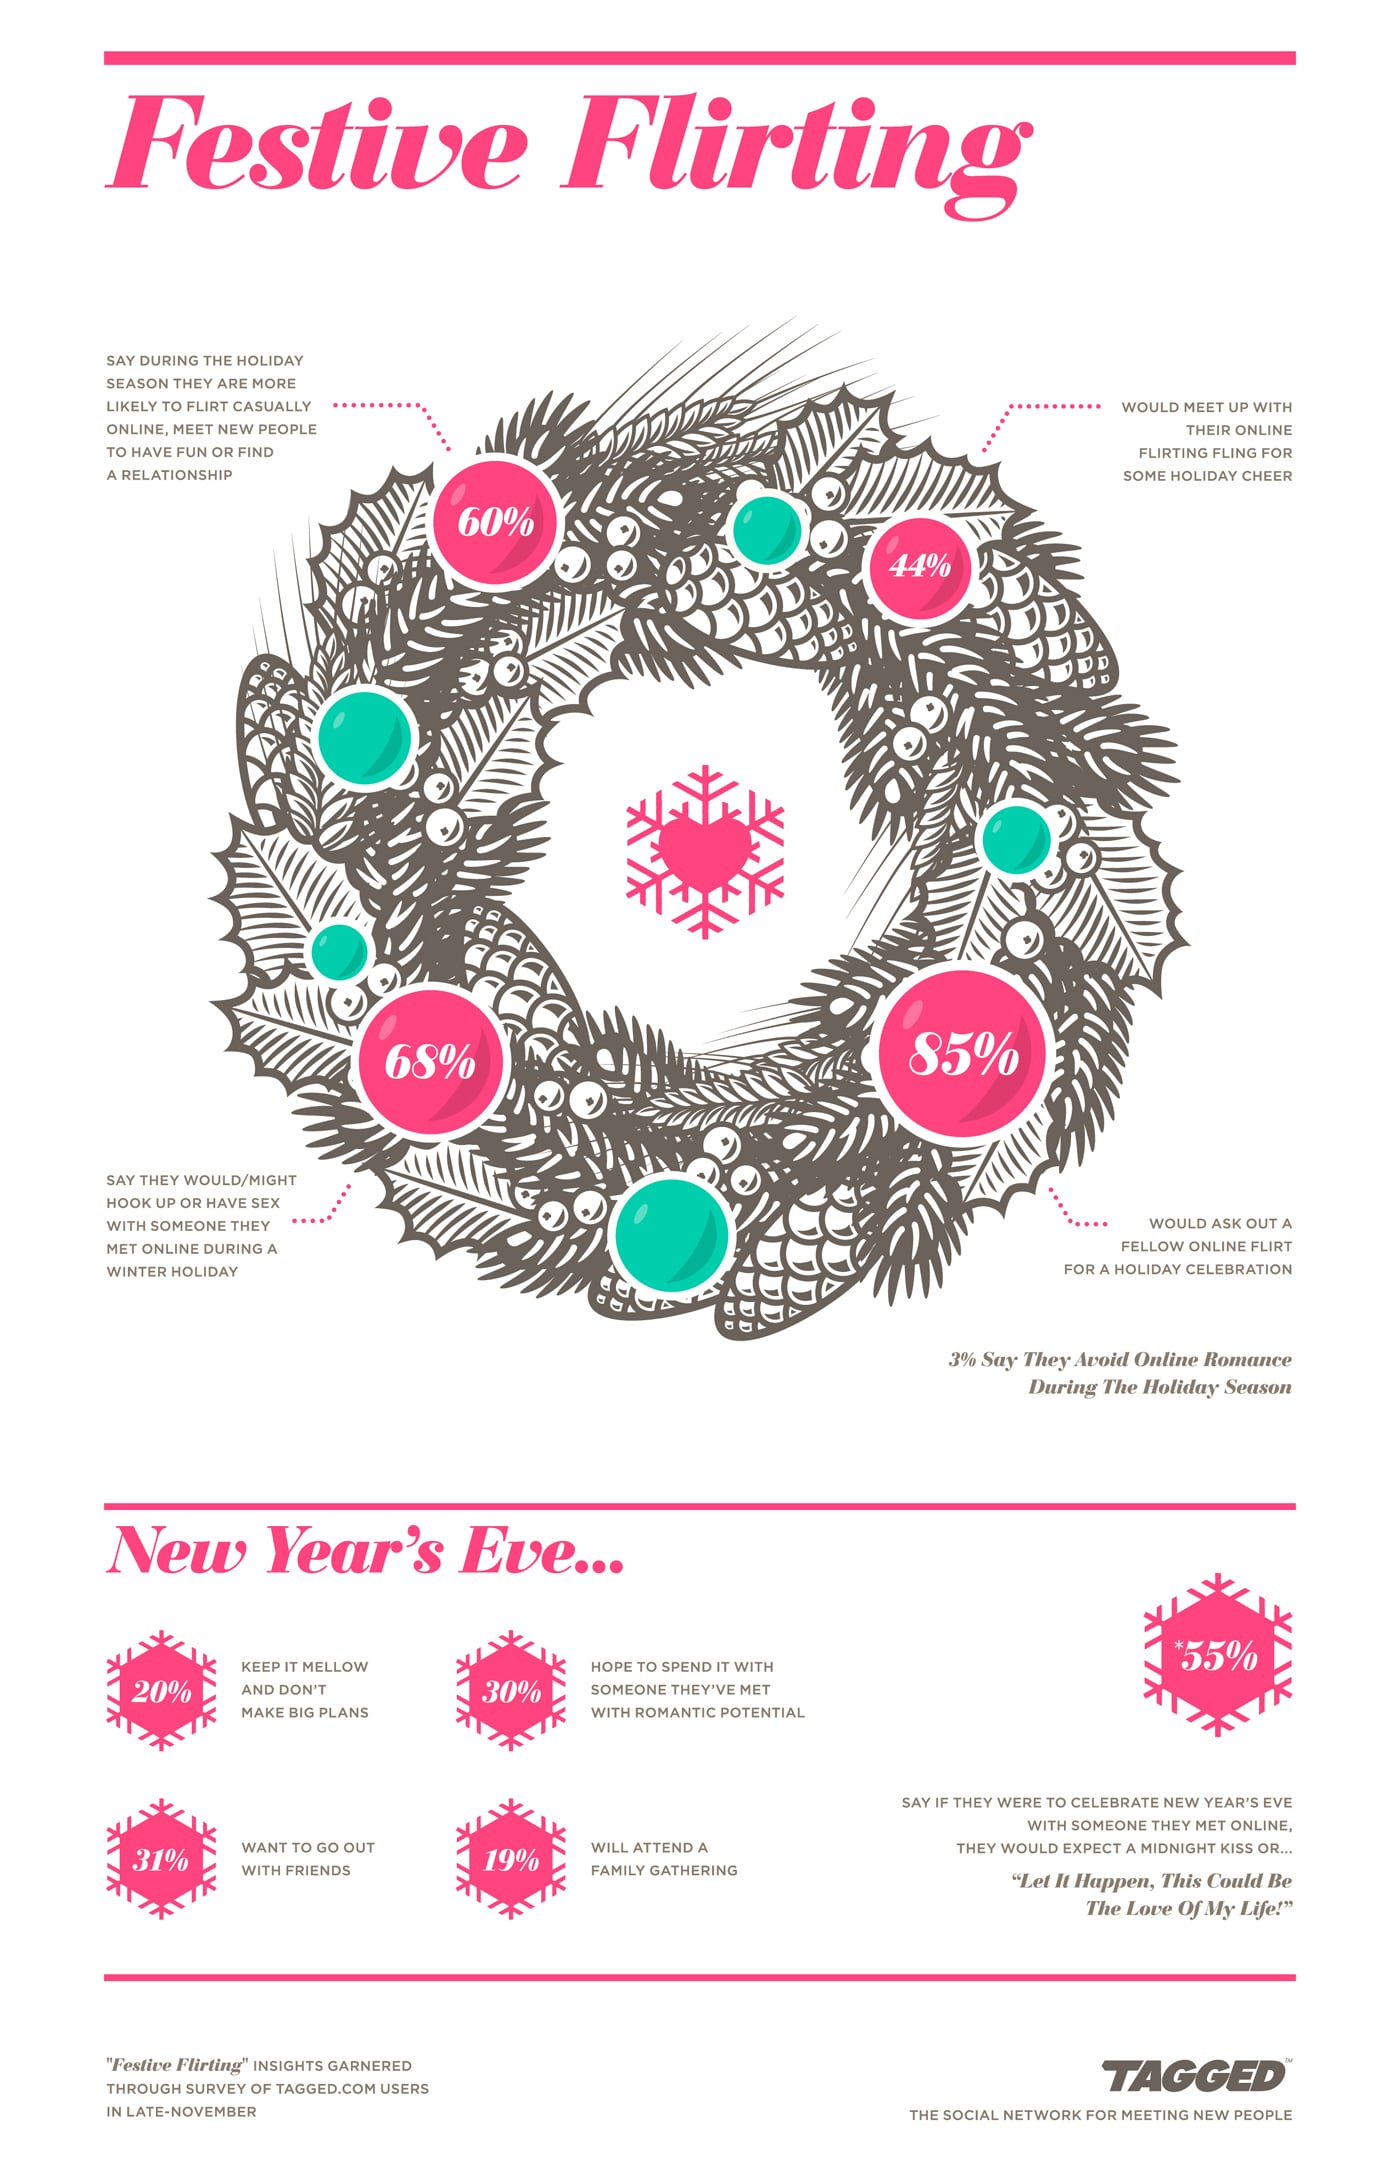 How Social Dating Affects Us During The Holidays [Infographic]